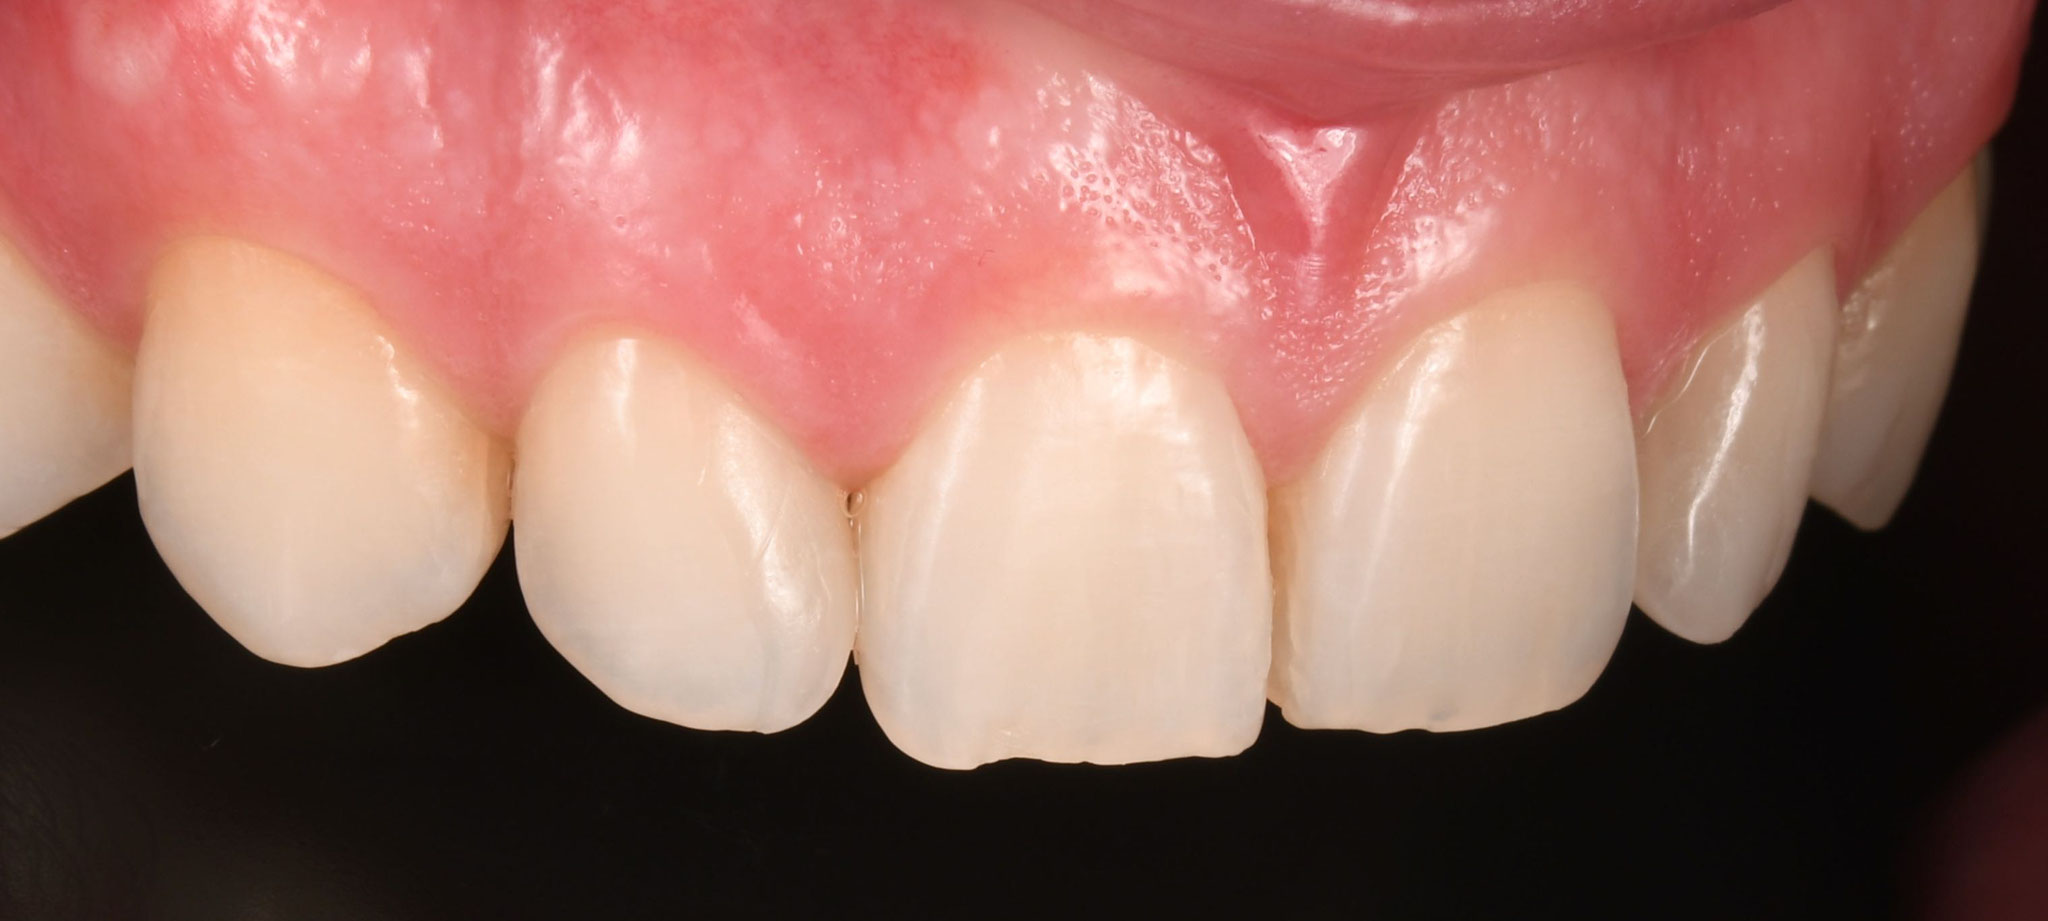 Case-1. 7 Adittional Veneer on lateral right